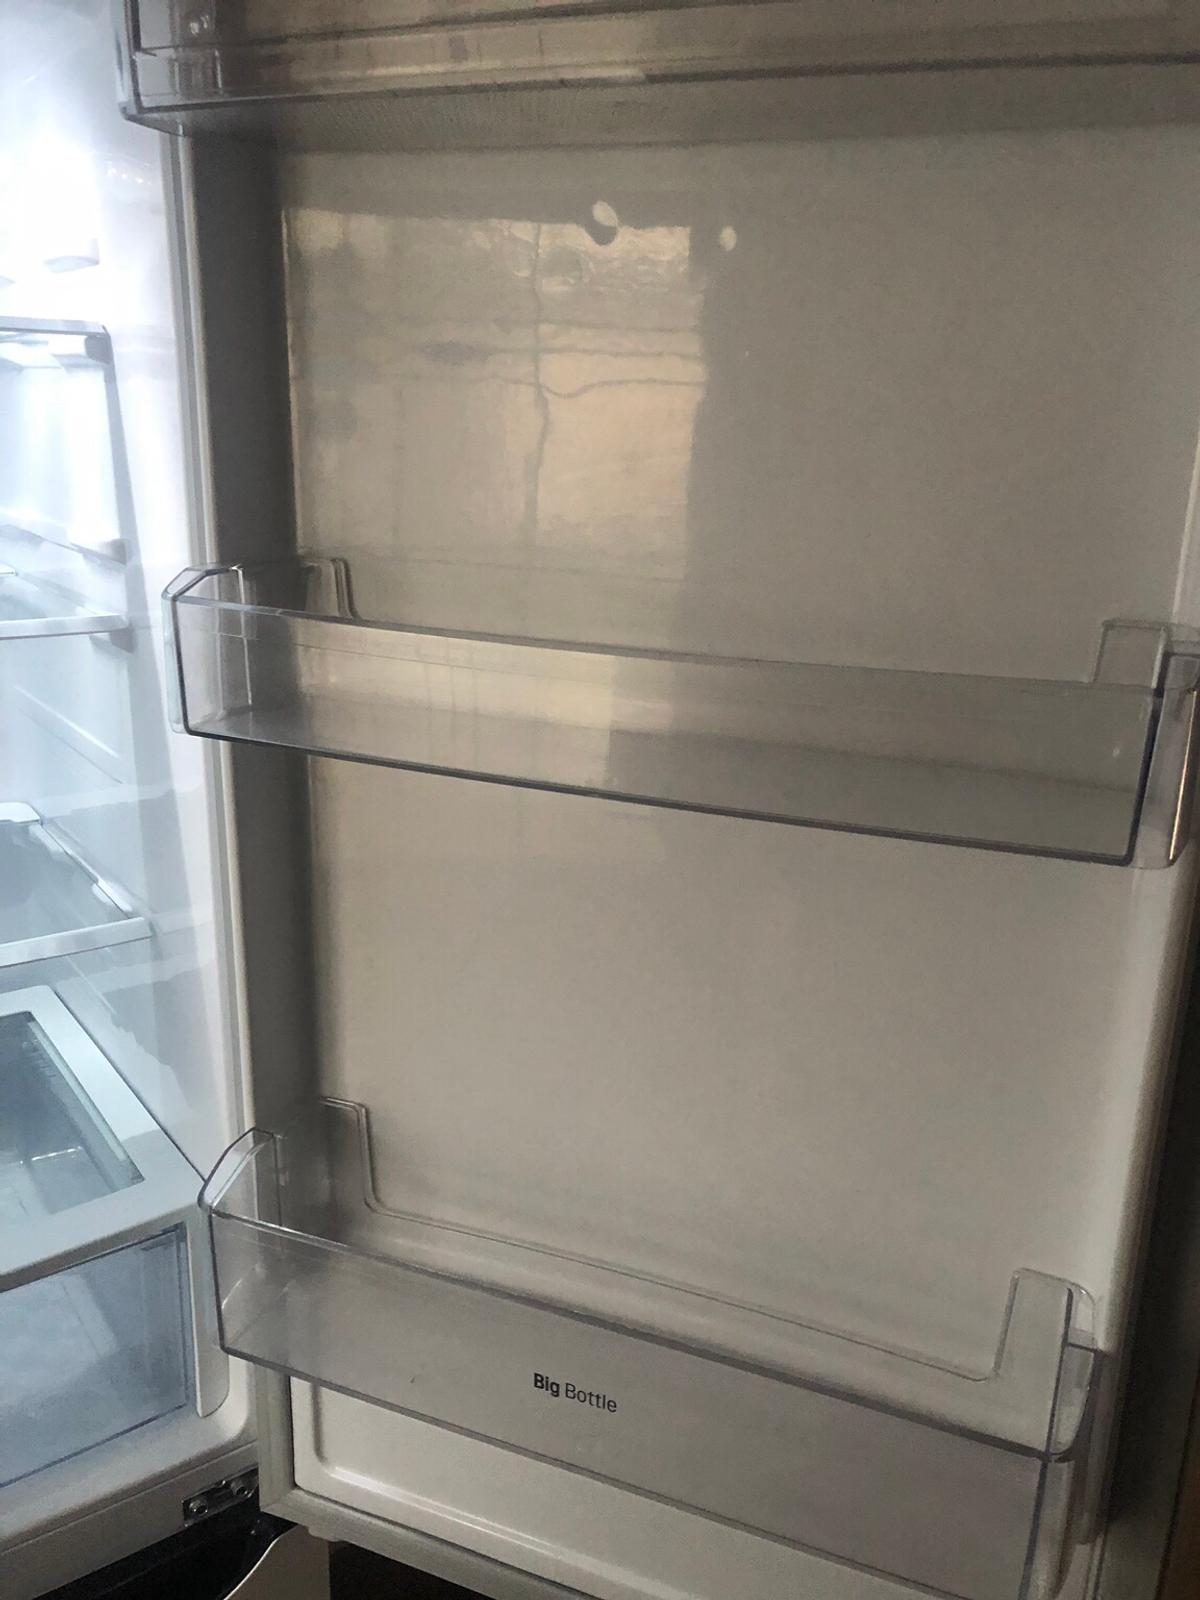 LG fridge freezer in L36 Knowsley for £70 00 for sale - Shpock